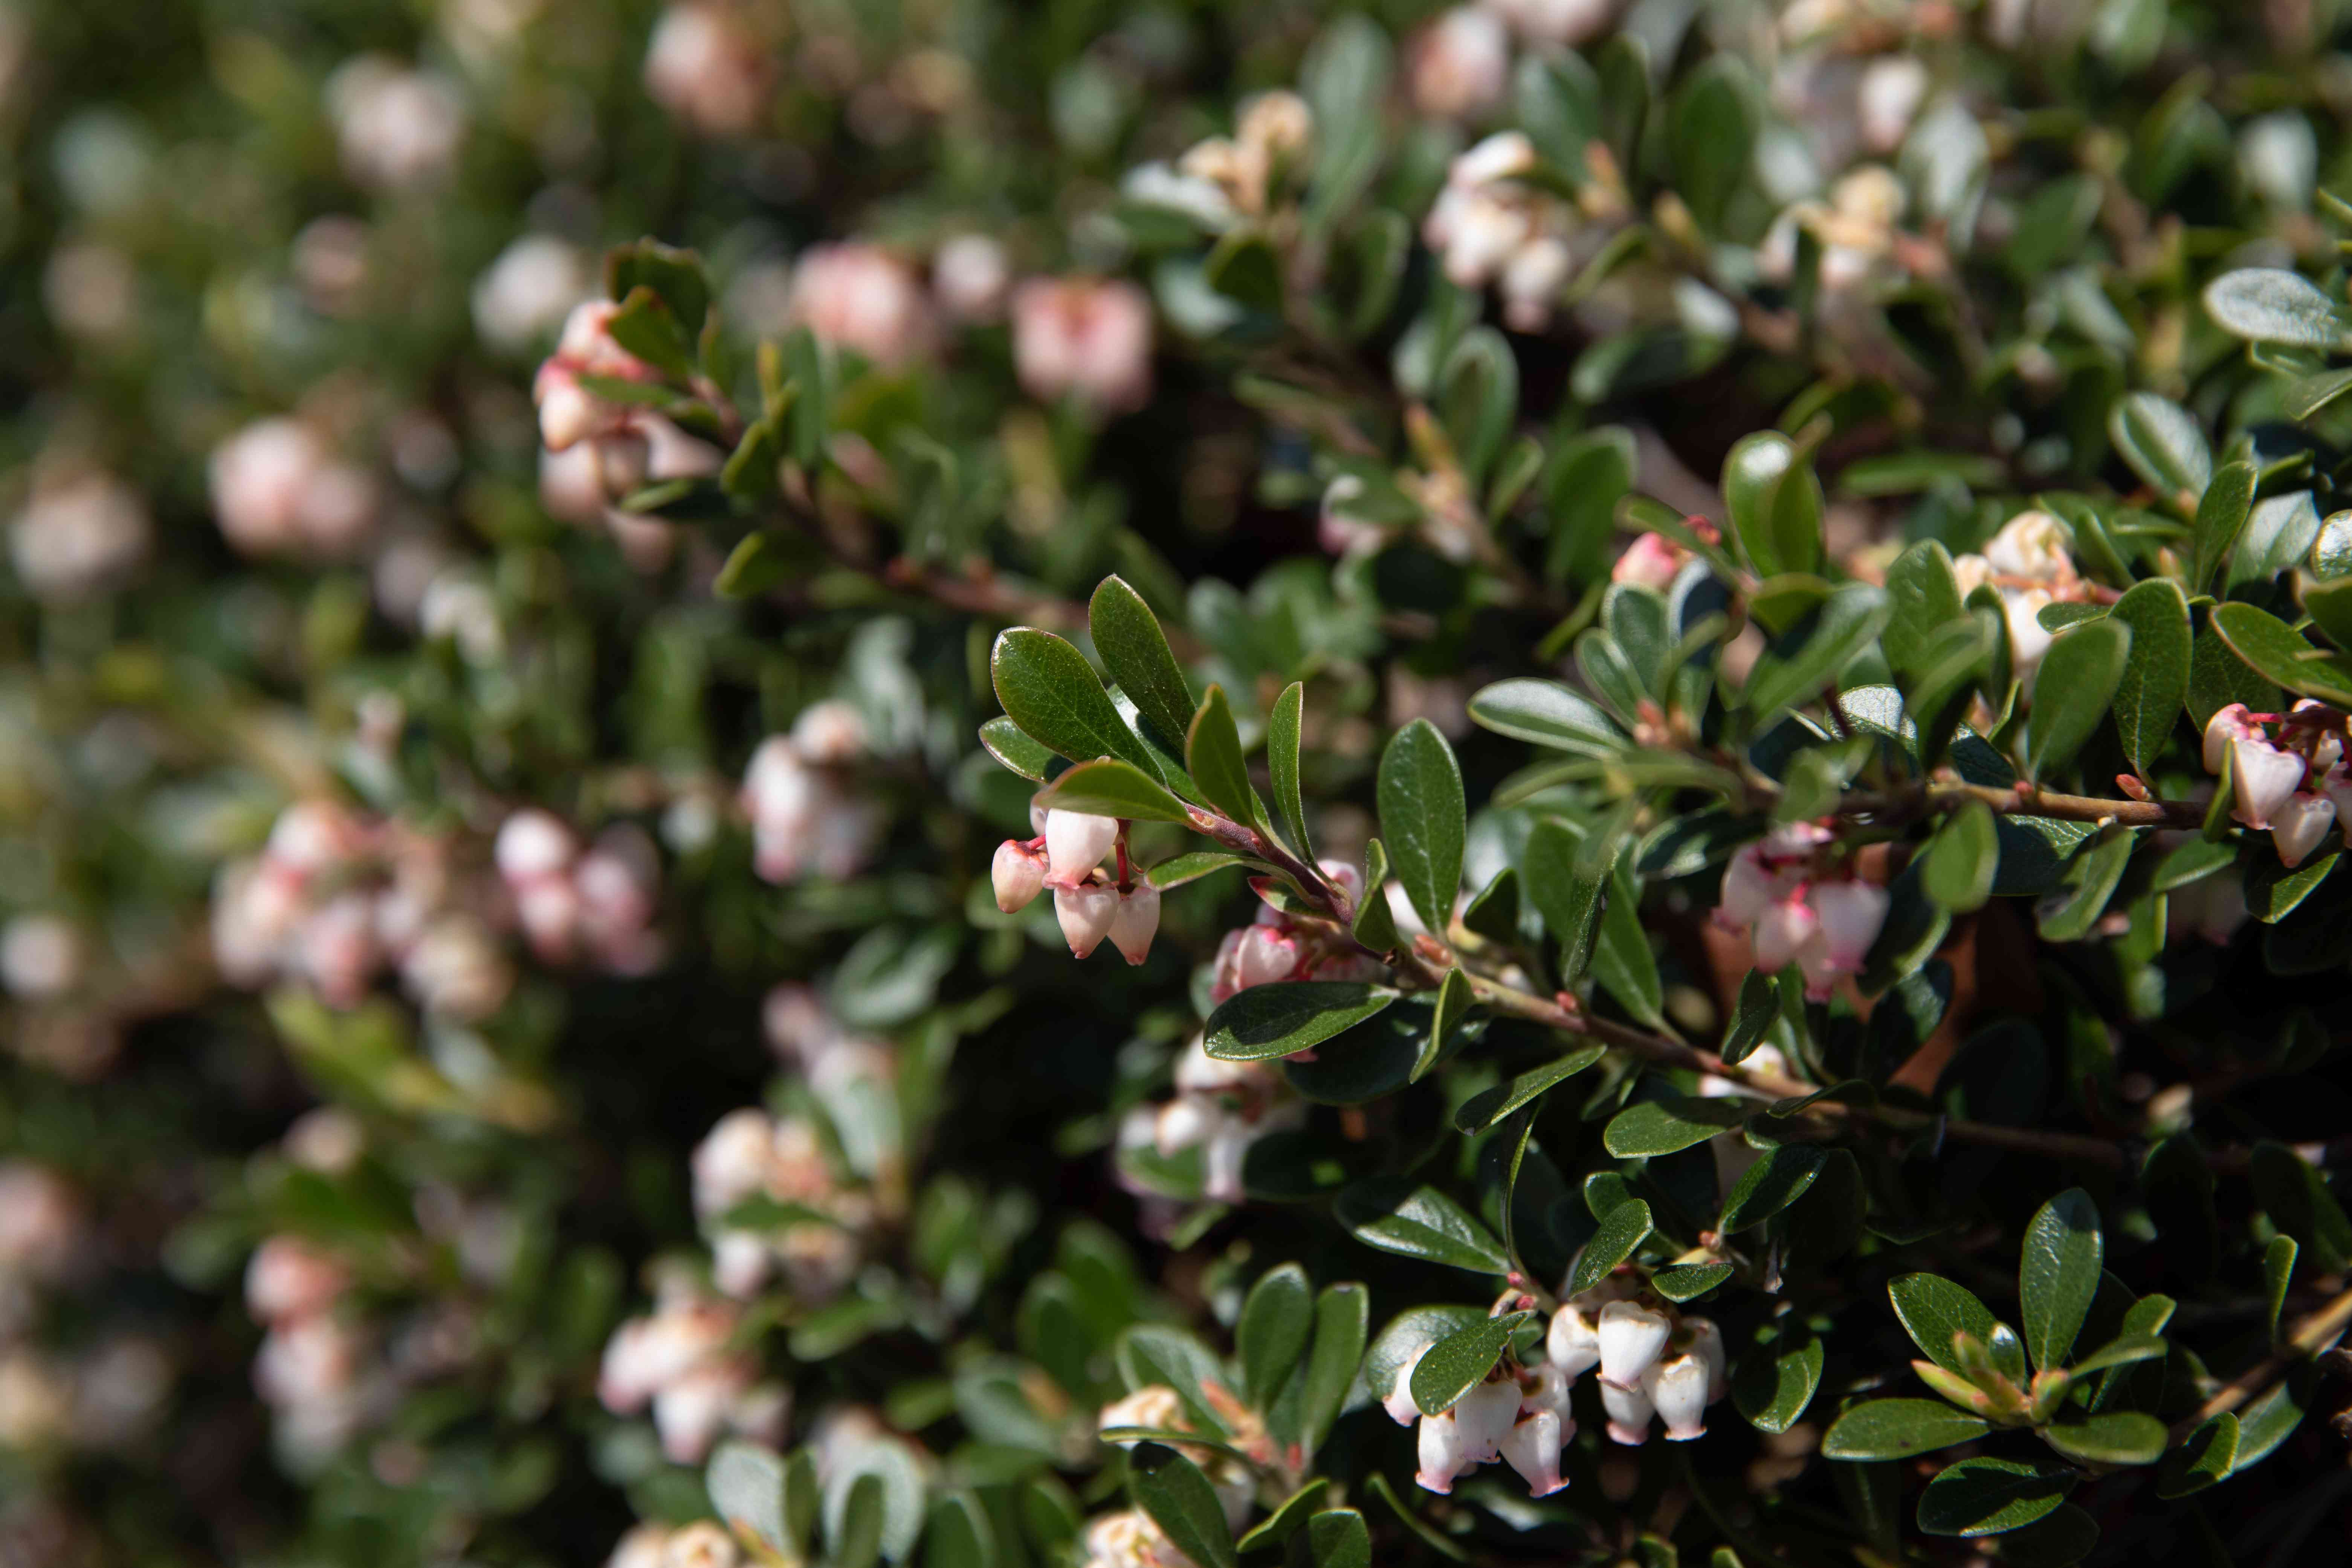 Bearberry sub-shrub branches with small white and pink bell-shaped flowers